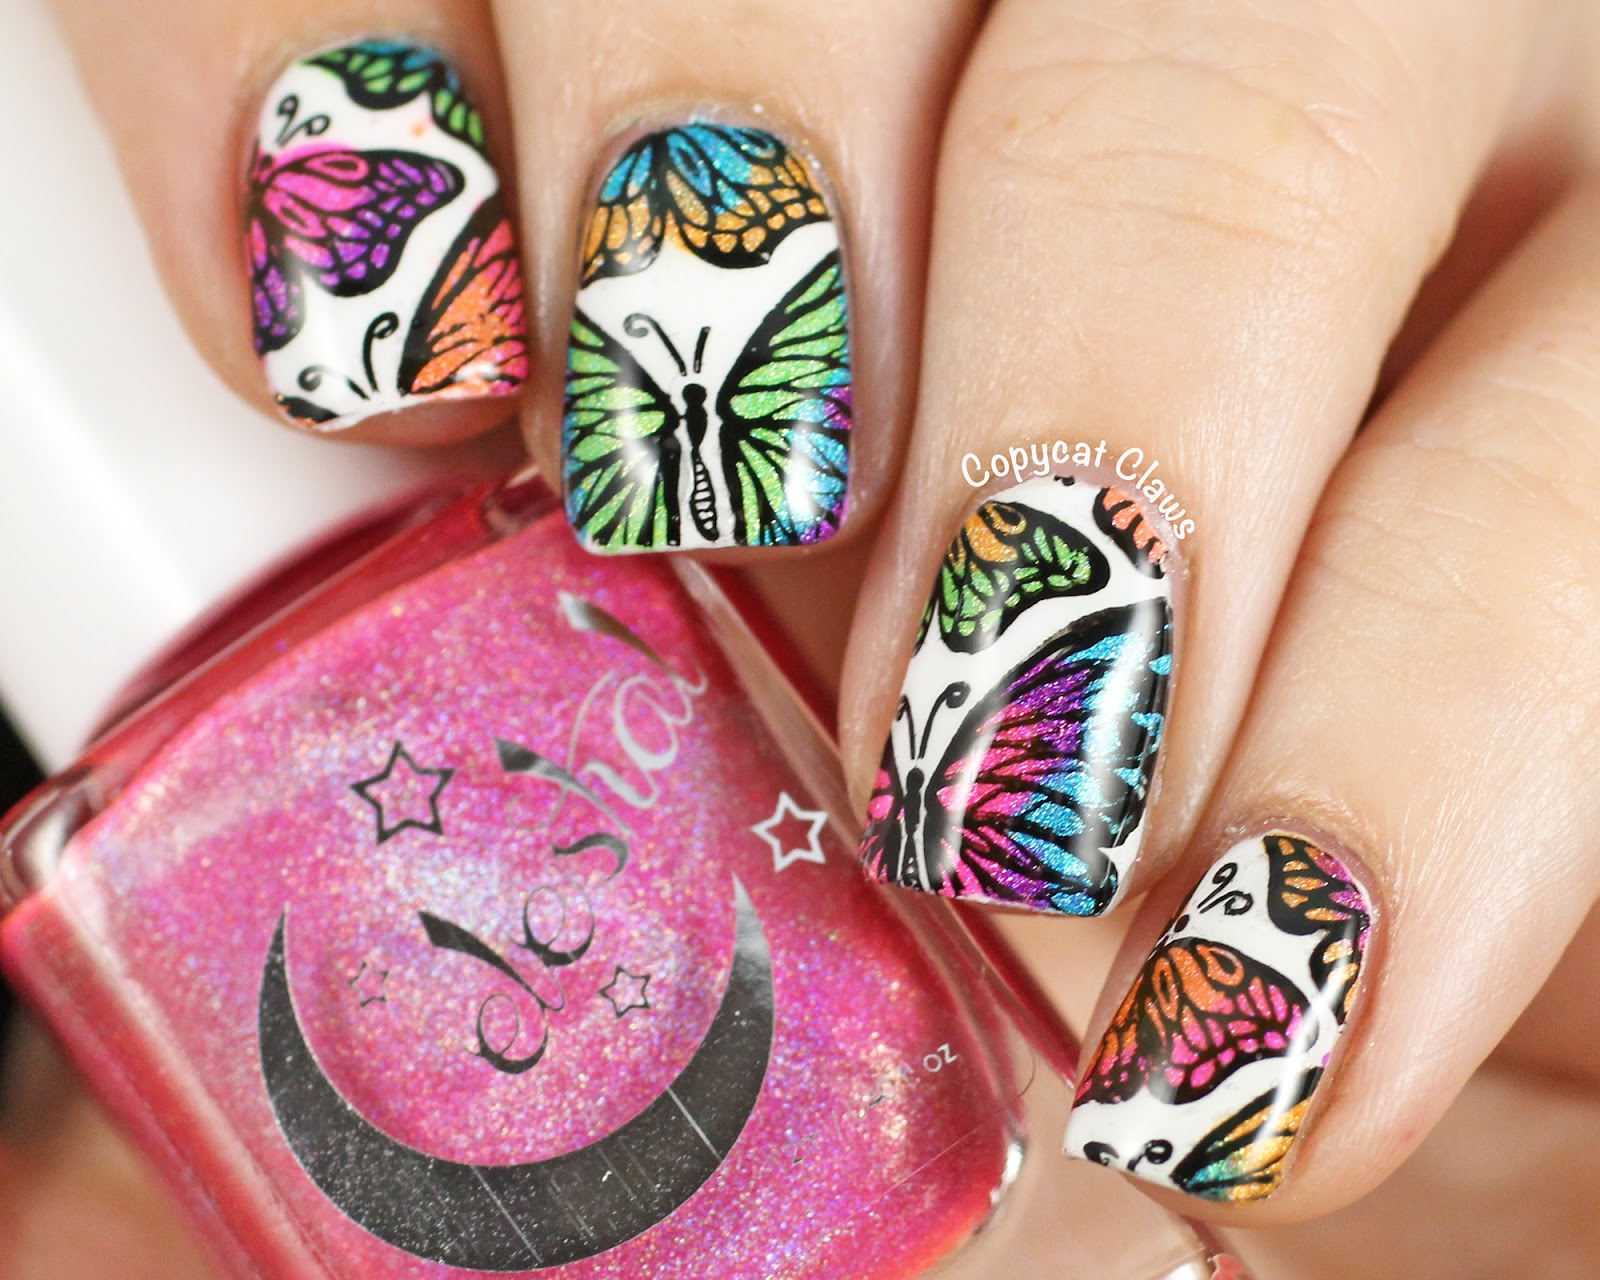 Copycat Claws: Holographic Butterfly Stamping Decals